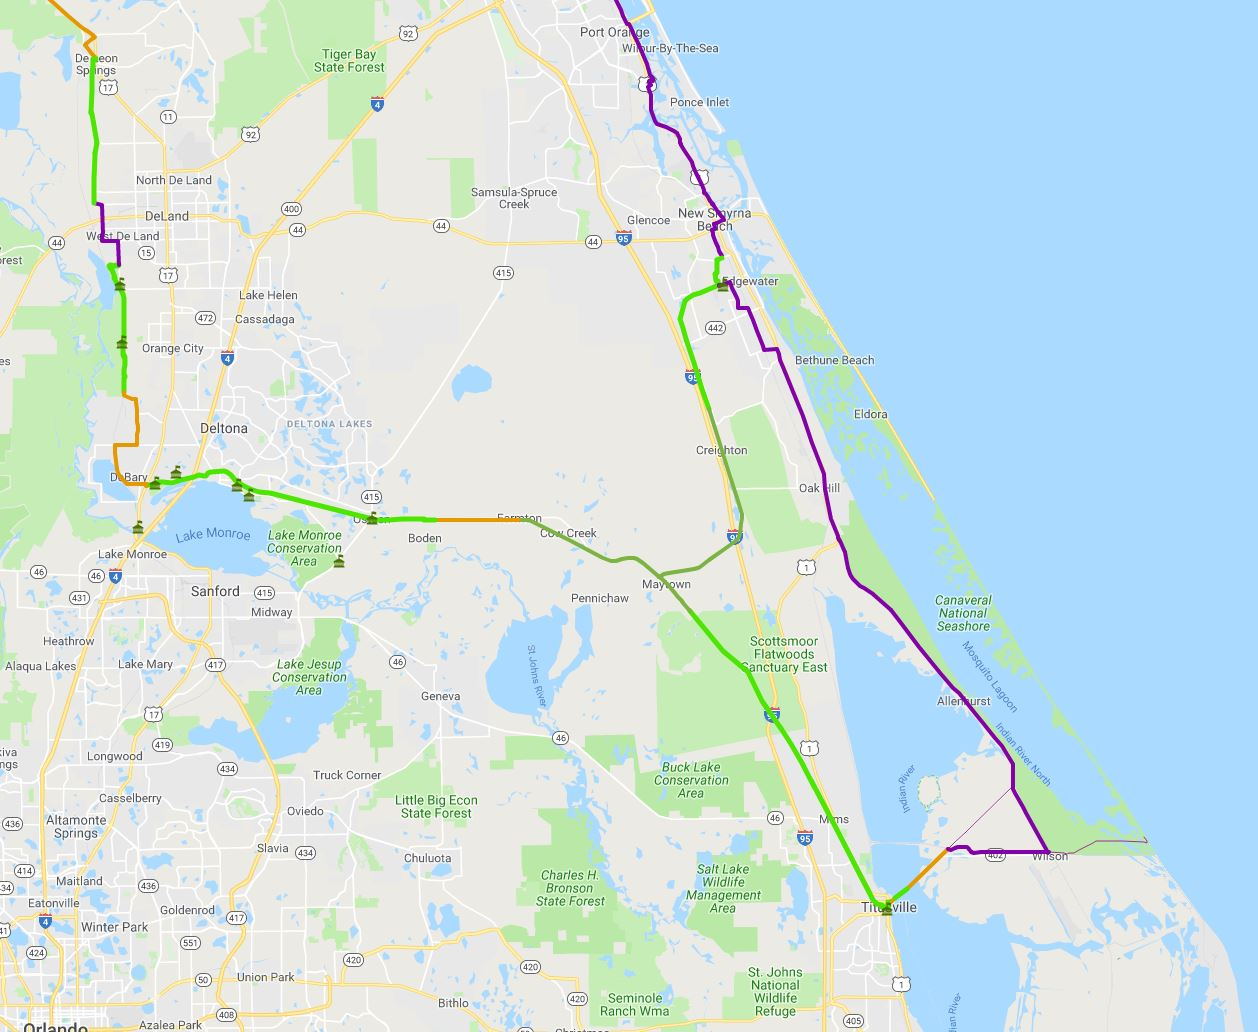 South Volusia New Section | St Johns River-to-Sea Loop Alliance on cross florida barge canal, volusia county, st. marys river, chattahoochee river, lake monroe, caloosahatchee river, pa river map, alpine river map, silver springs, russia river map, pee dee river map, john day river map, james river, peace river, huron river map, st. lawrence river map, tennessee river, caloosahatchee river map, arkansas river map, rio grande river map, vernon river map, dames point bridge, kingston river map, st. clair river map, missouri river map, ocklawaha river, suwannee river, mississippi river map, st. augustine, apalachicola river, indian river county, henry's fork river map, suwannee river map, mn river map, kanawha river map, withlacoochee river, st. louis river map, vero beach, lake george,